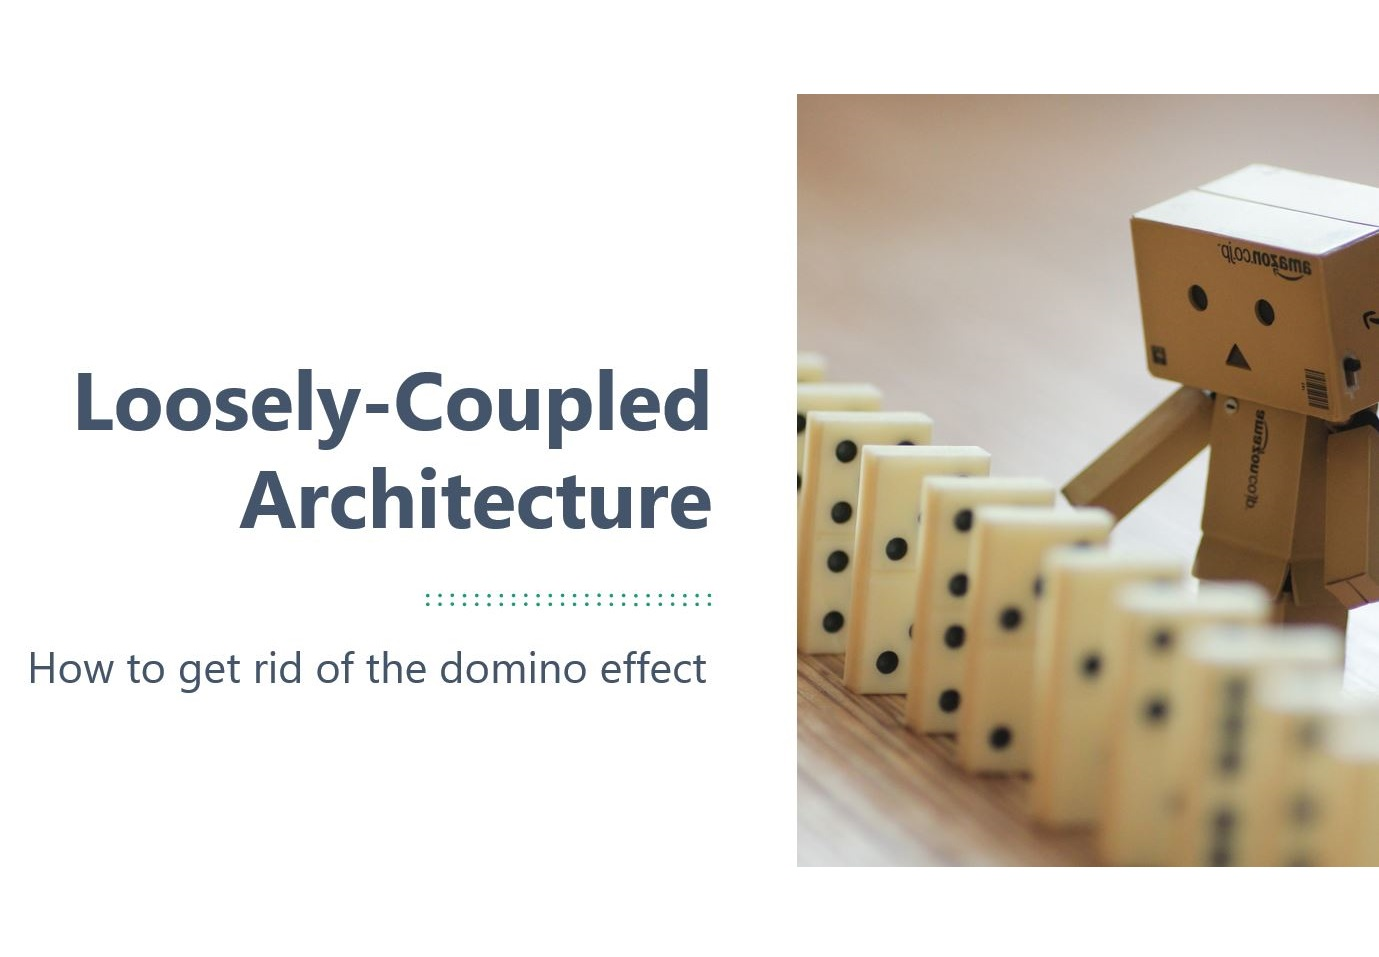 image from Loosely-Coupled Architecture - how to get rid of the domino effect